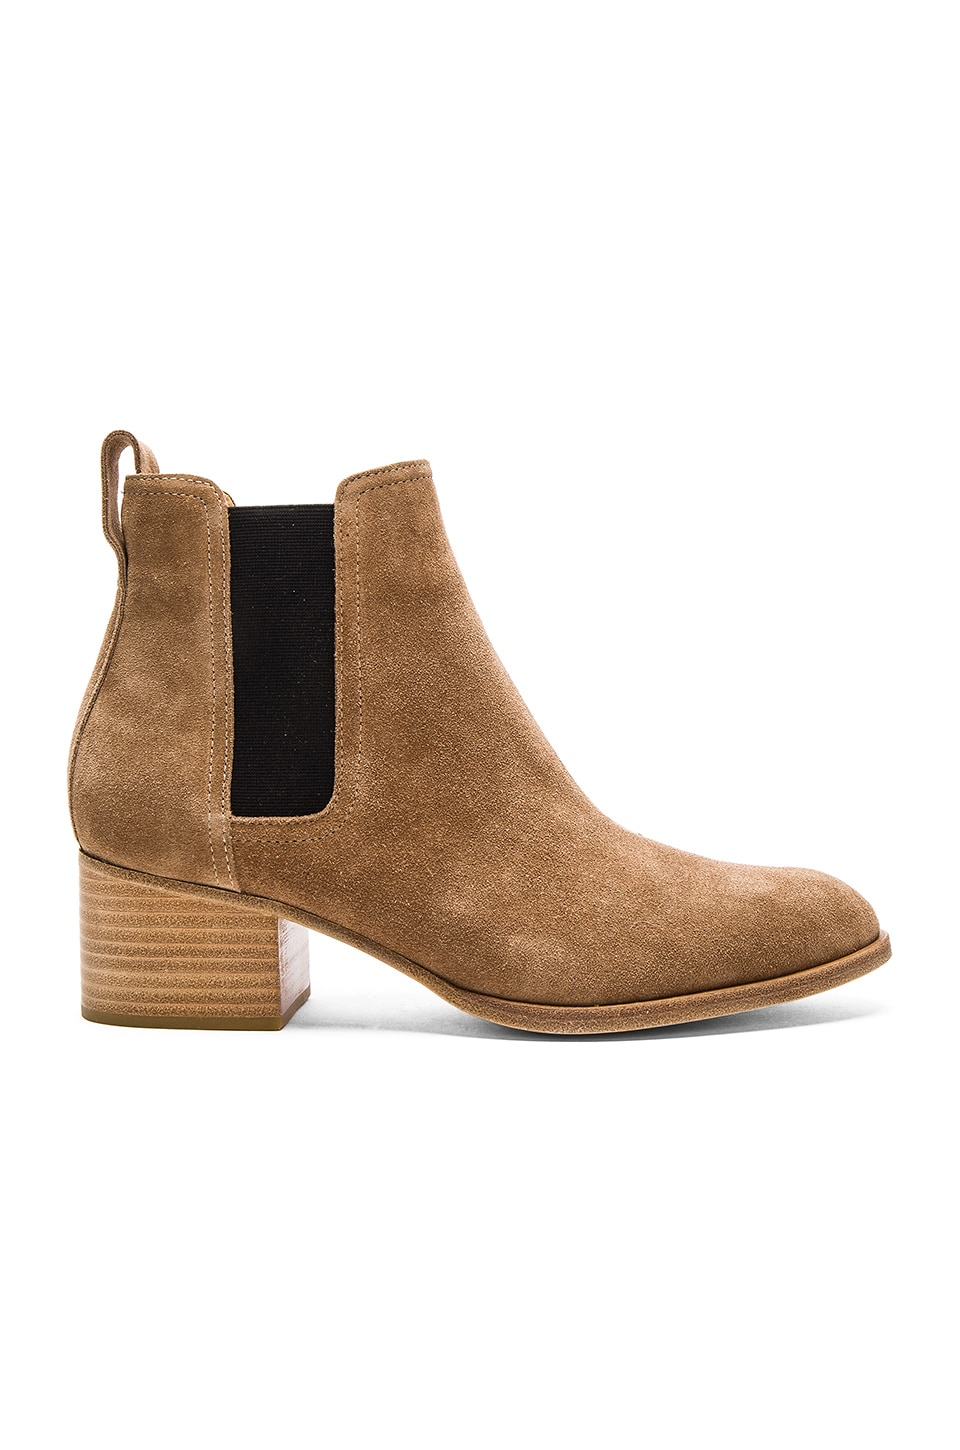 Rag & Bone Walker Boot in Camel Suede